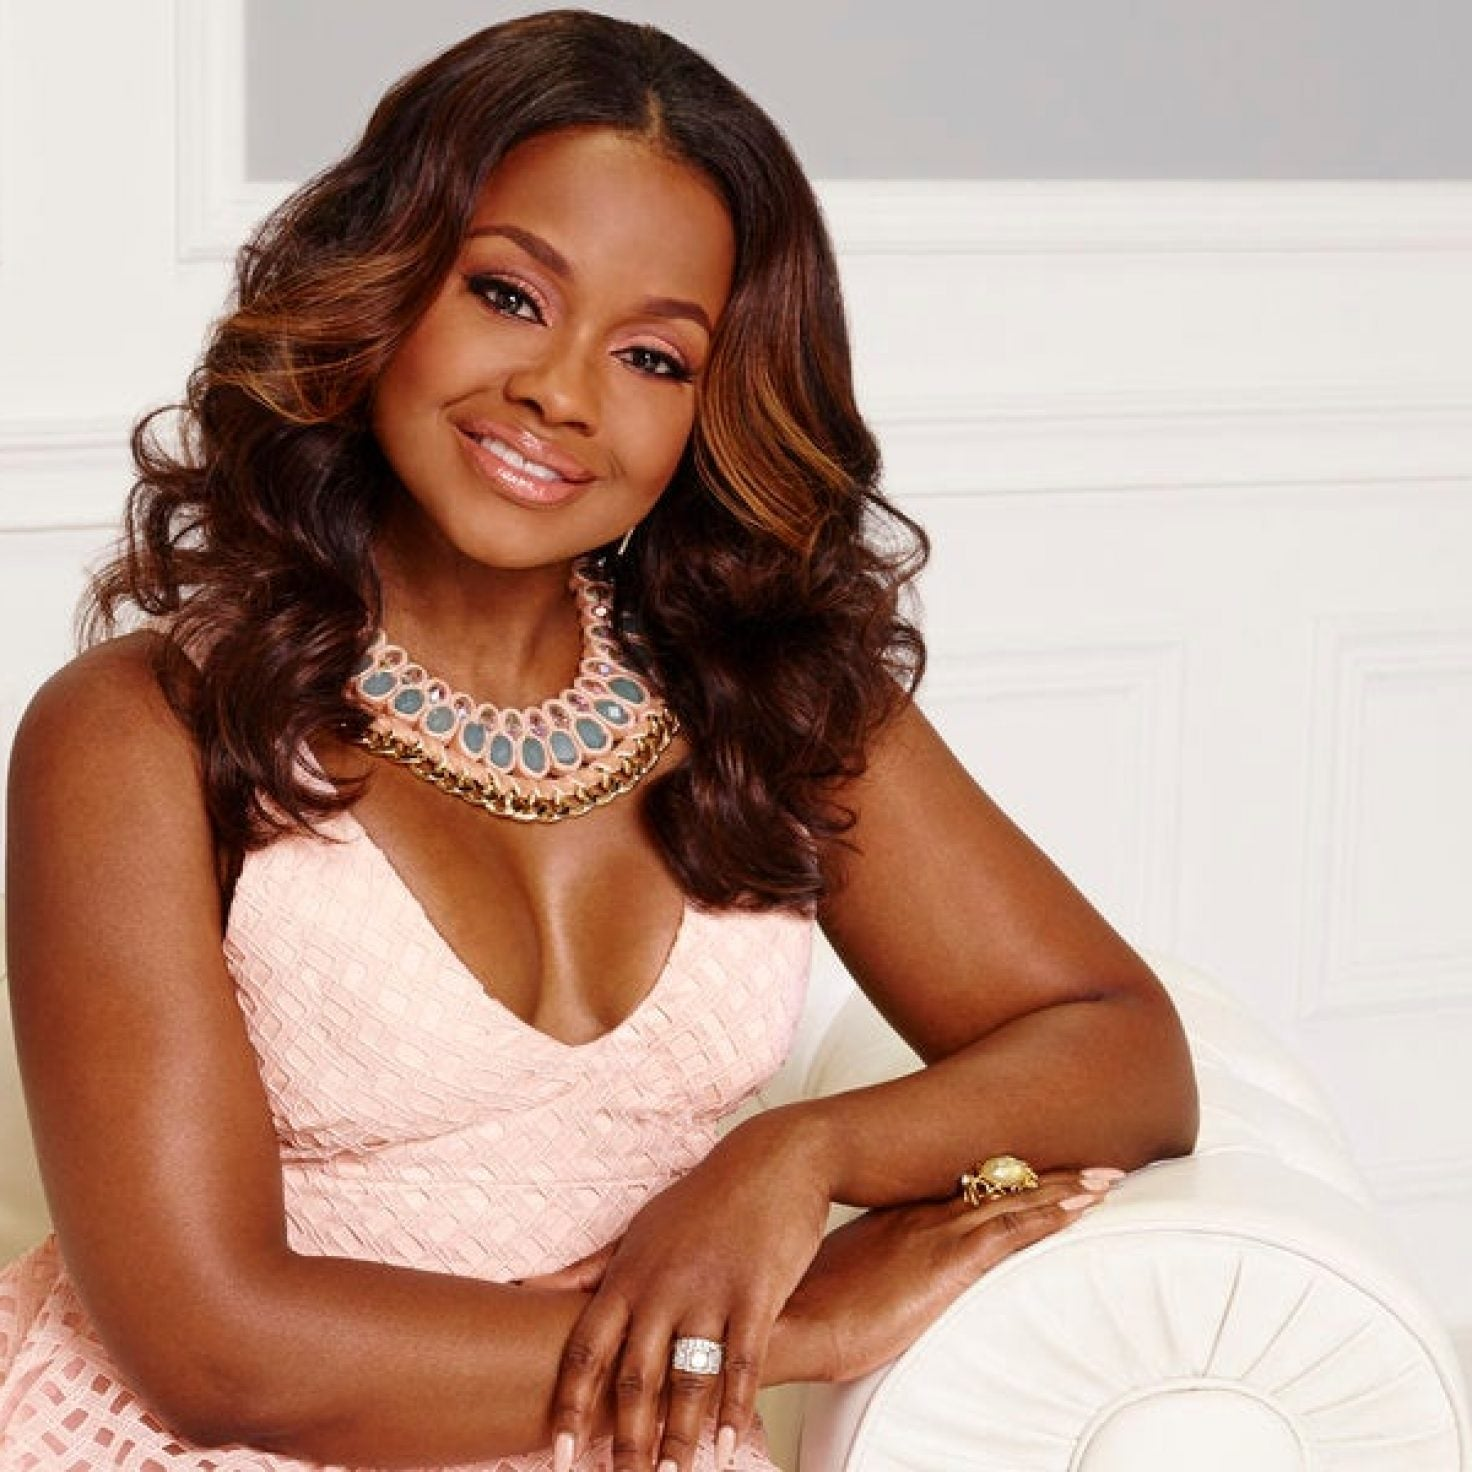 phaedra-parks-shares-a-clip-featuring-the-late-chadwick-boseman-fans-are-in-tears